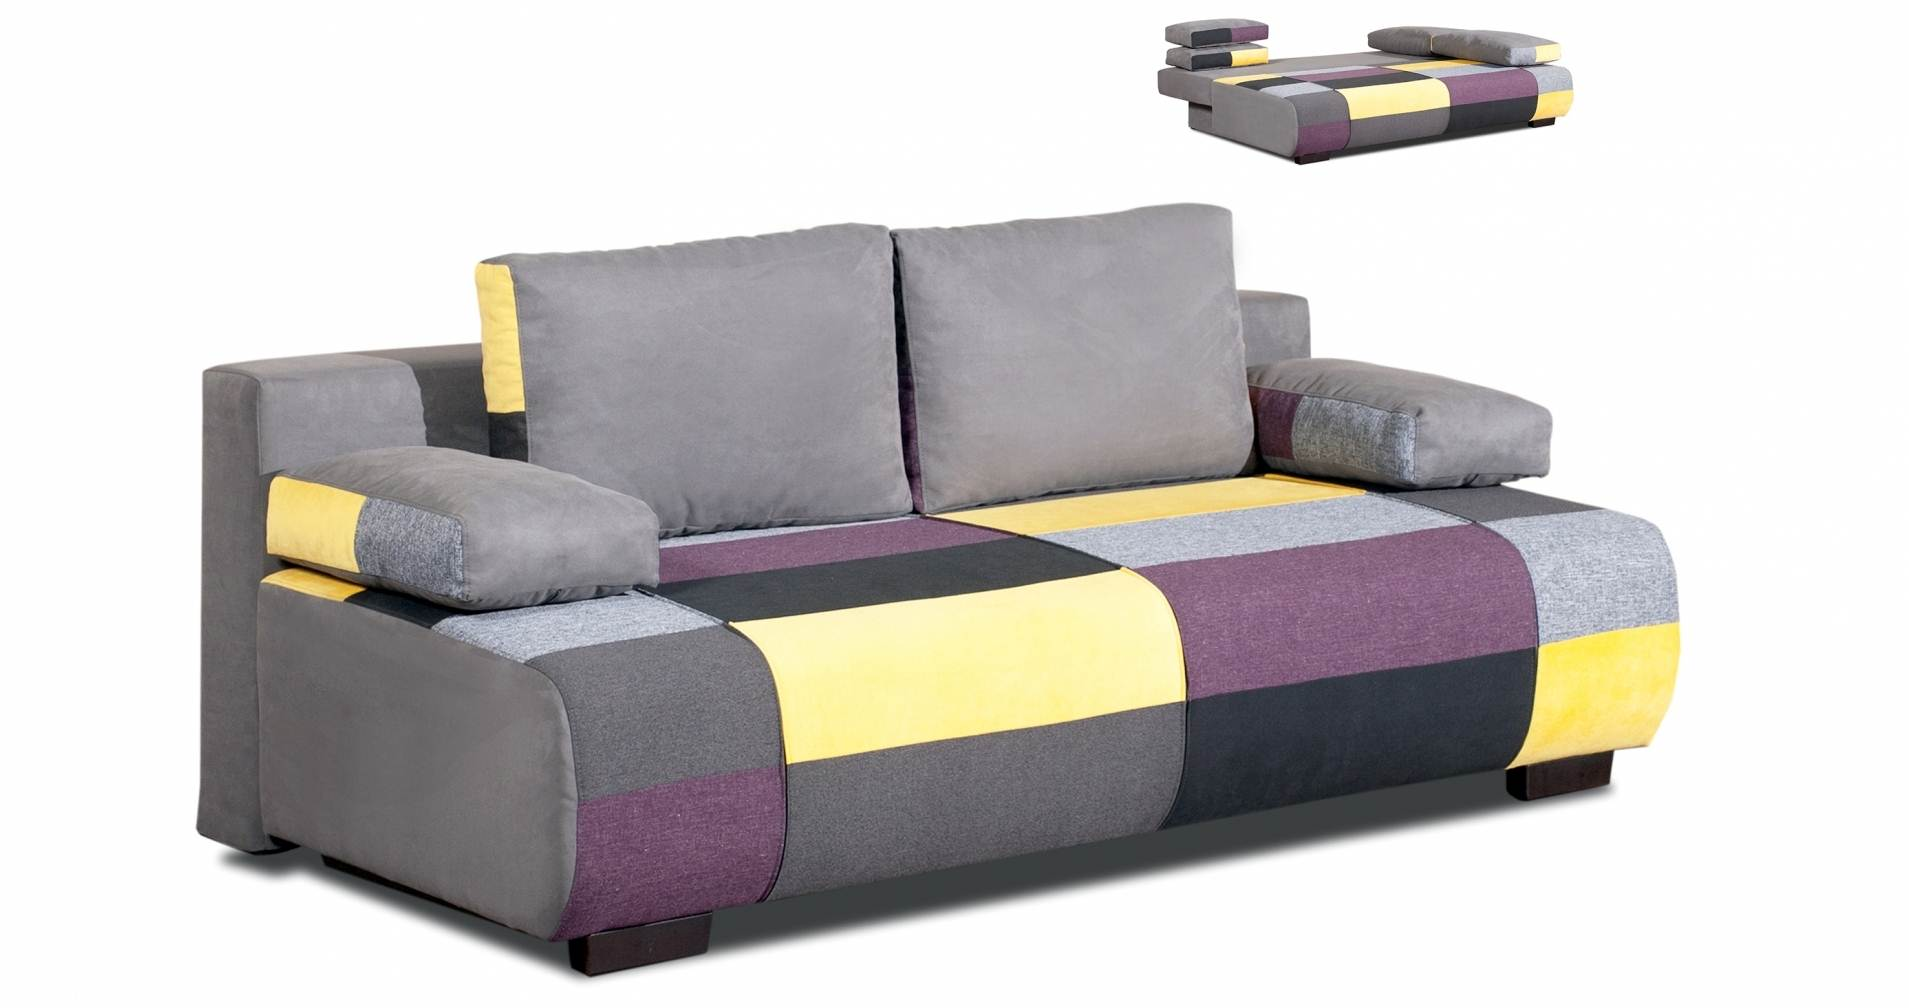 Deco in paris canape 3 places convertible en tissu jaune - 3 suisses canape convertible ...